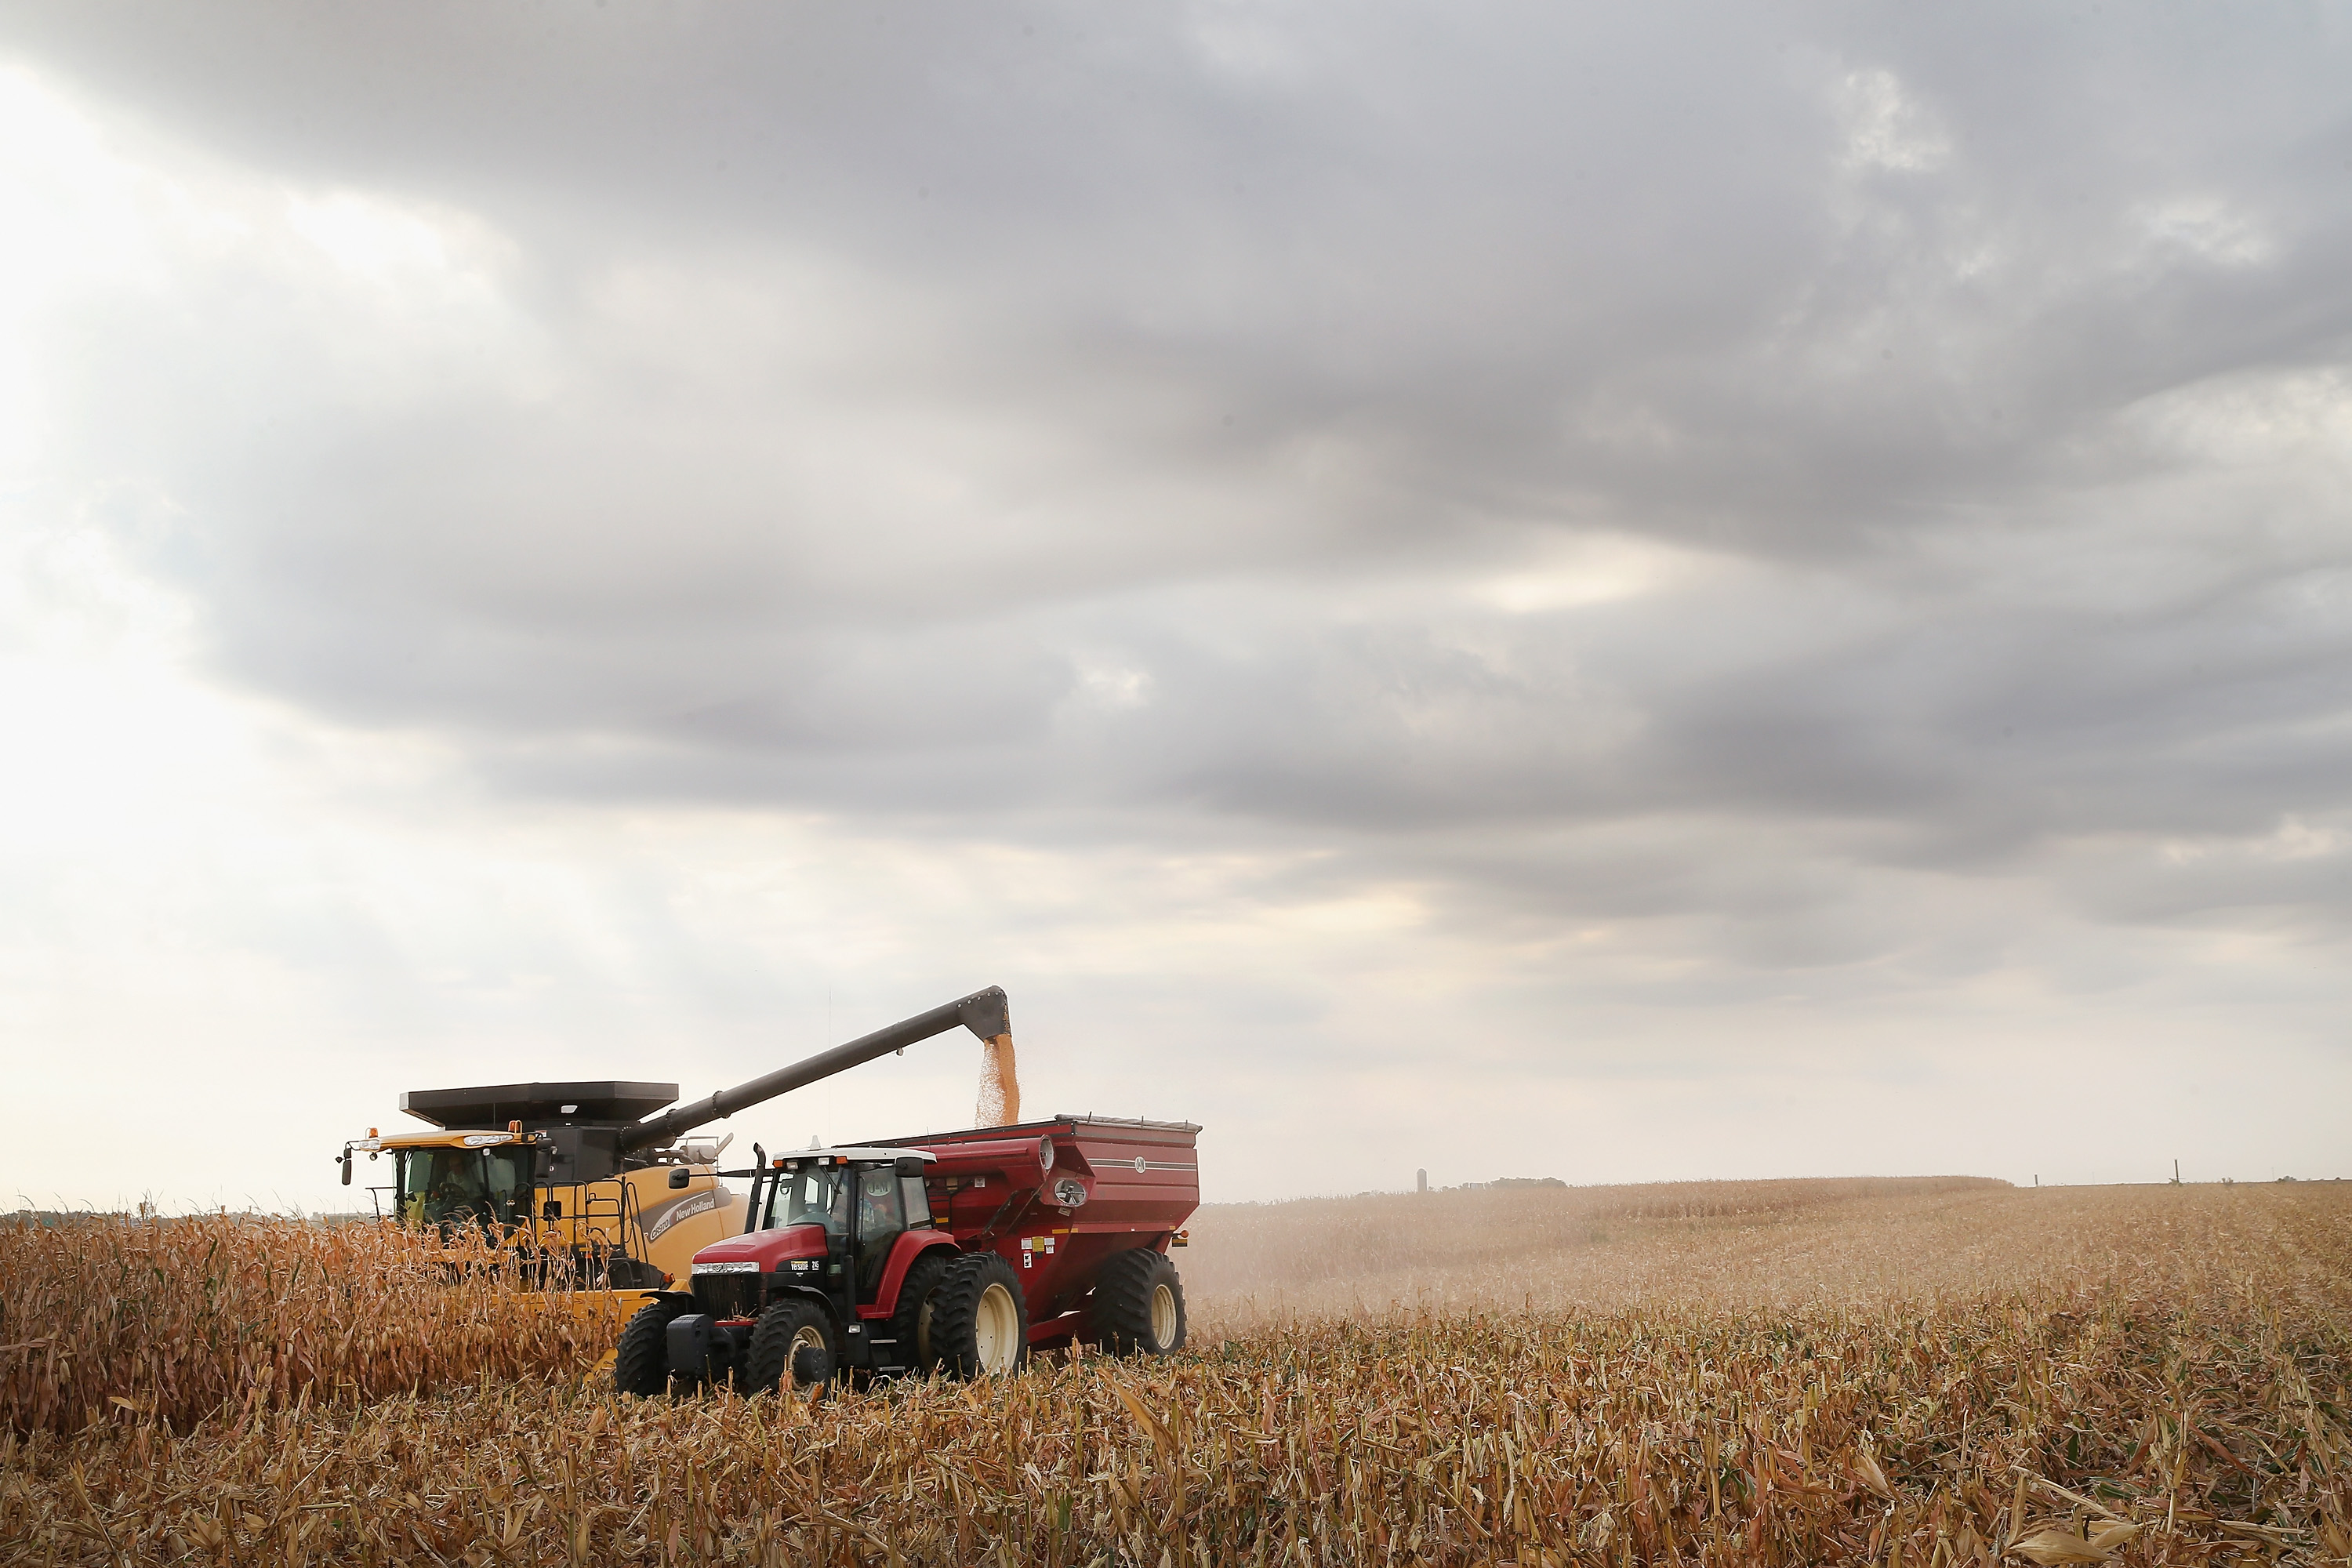 Farmers harvest a field of corn near Salem, S.D., in 2013. A robust domestic biofuels industry, including ethanol, would benefit farmers and our rural economy as well as the environment, public health and the nation's energy security, Daschle writes. (Scott Olson/Getty Images file photo)